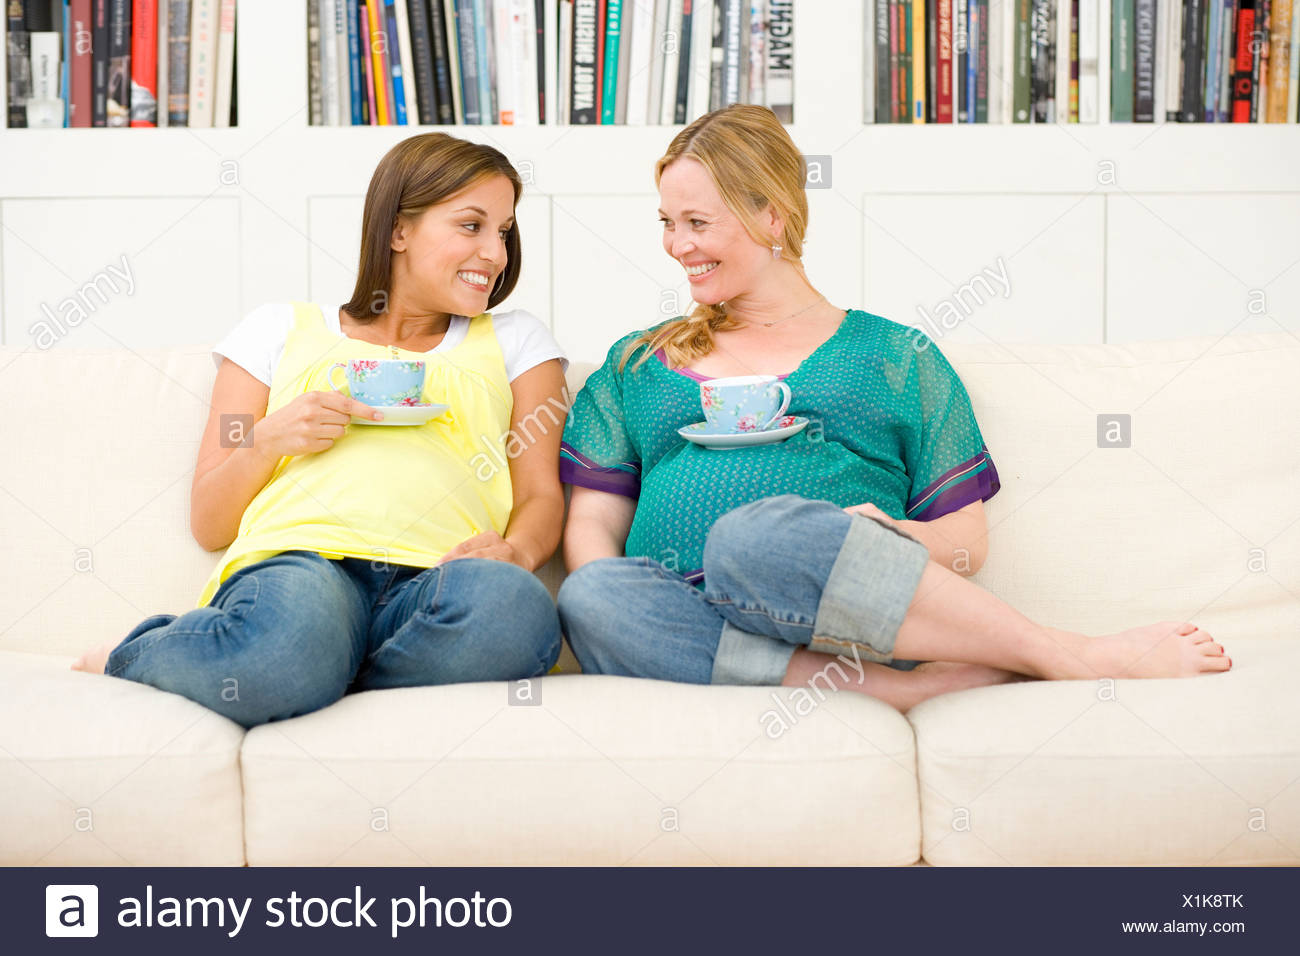 Two young pregnant women on sofa with mugs resting on stomachs, smiling at each other, low angle view - Stock Image